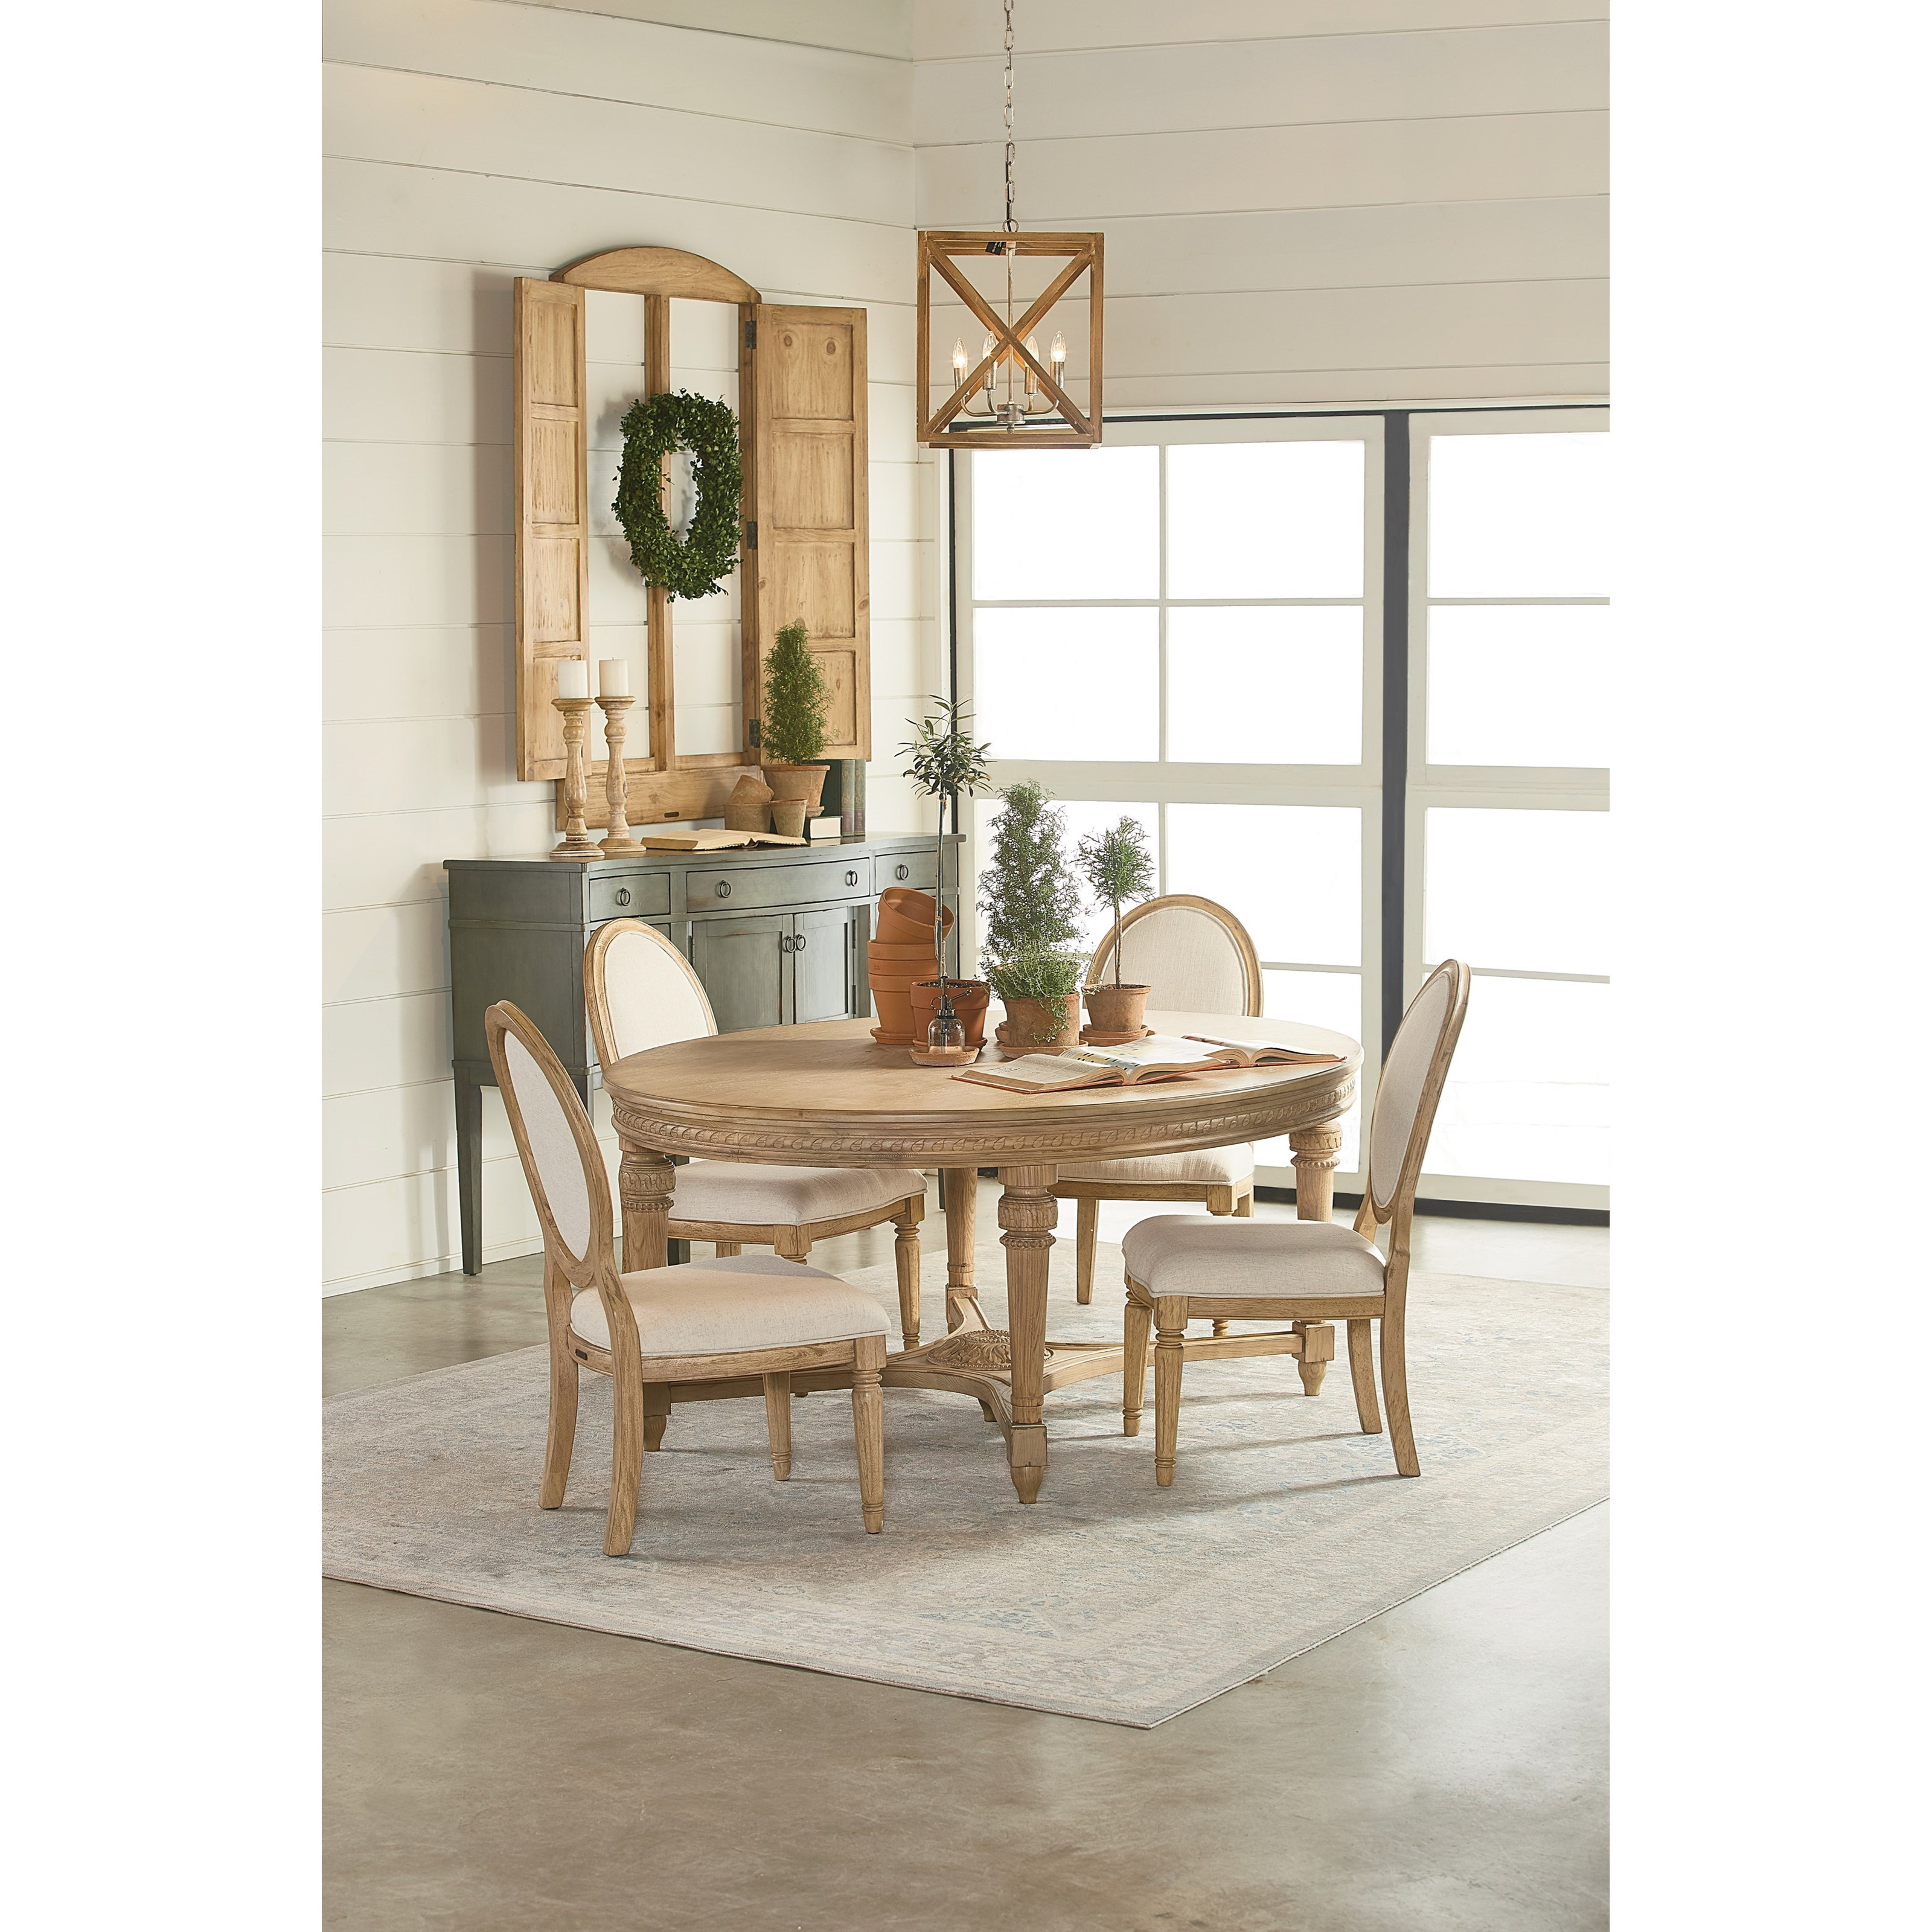 casual dining room group by magnolia home by joanna gaines. Black Bedroom Furniture Sets. Home Design Ideas